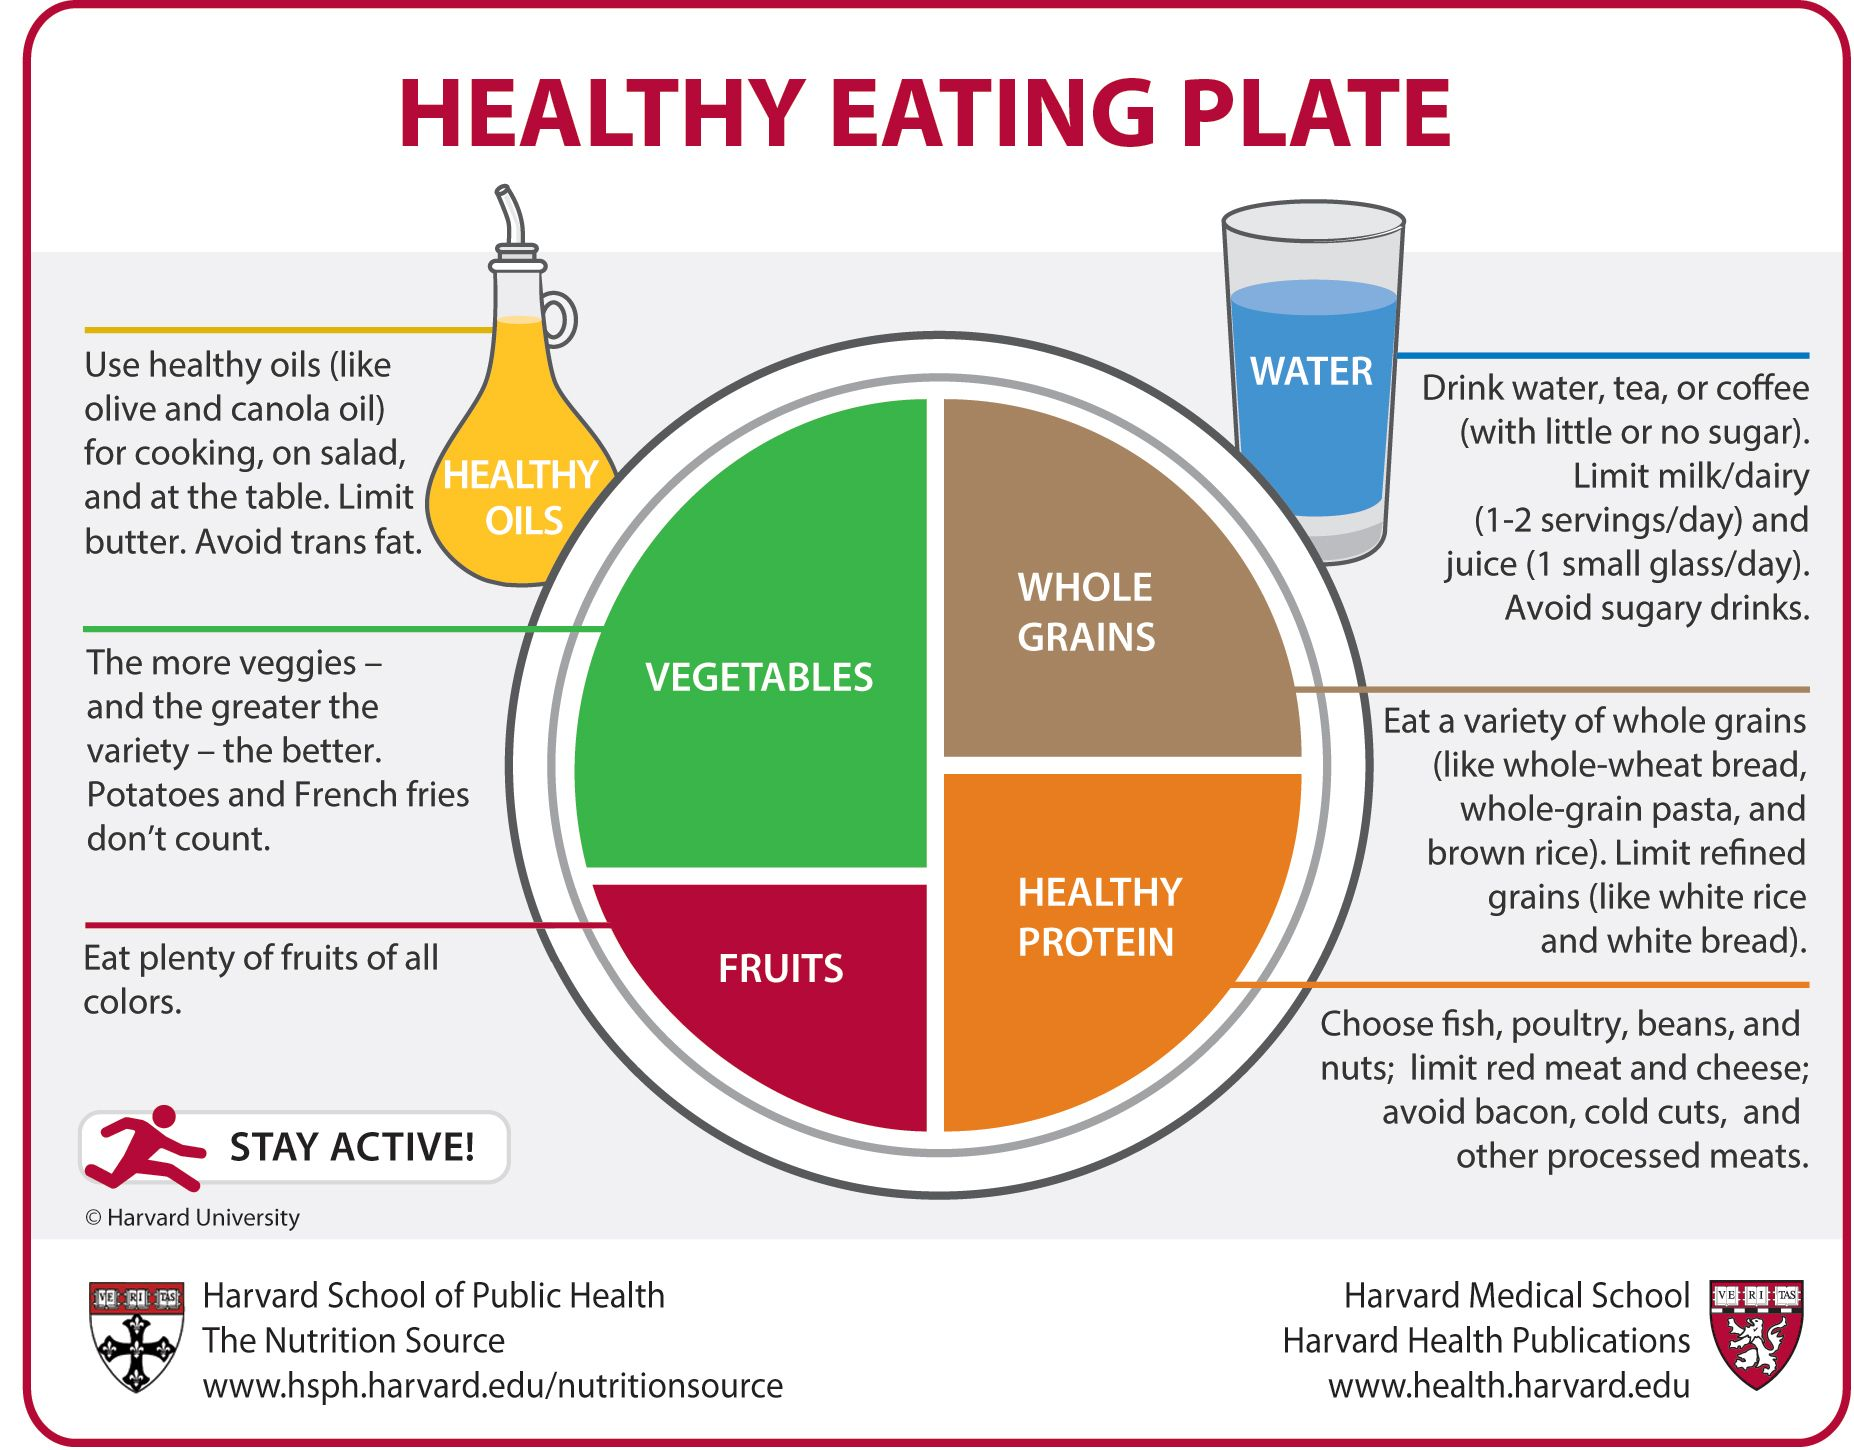 Thesis Statement Example For Essays Healthy Eating Plate From Harvard School Of Public Health  Definitely Sums  Up My Eating Philosophy Thesis Statements For Essays also Persuasive Essay Samples High School Healthy Eating Plate From Harvard School Of Public Health  Essay Papers Examples